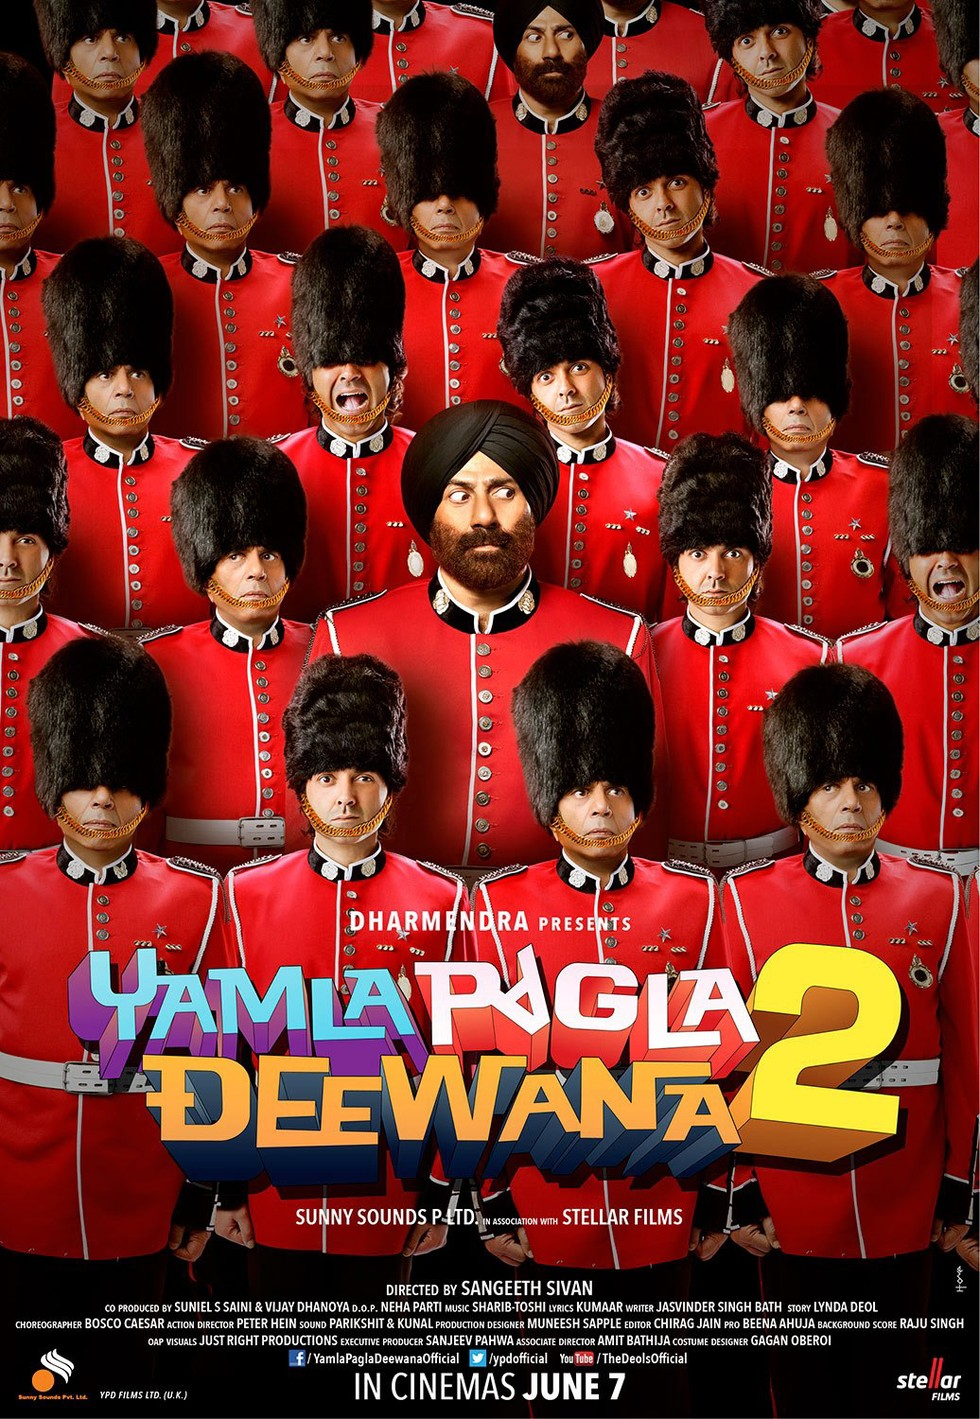 Yamla Pagla Deewana 2 - Movie Poster #6 (Large)